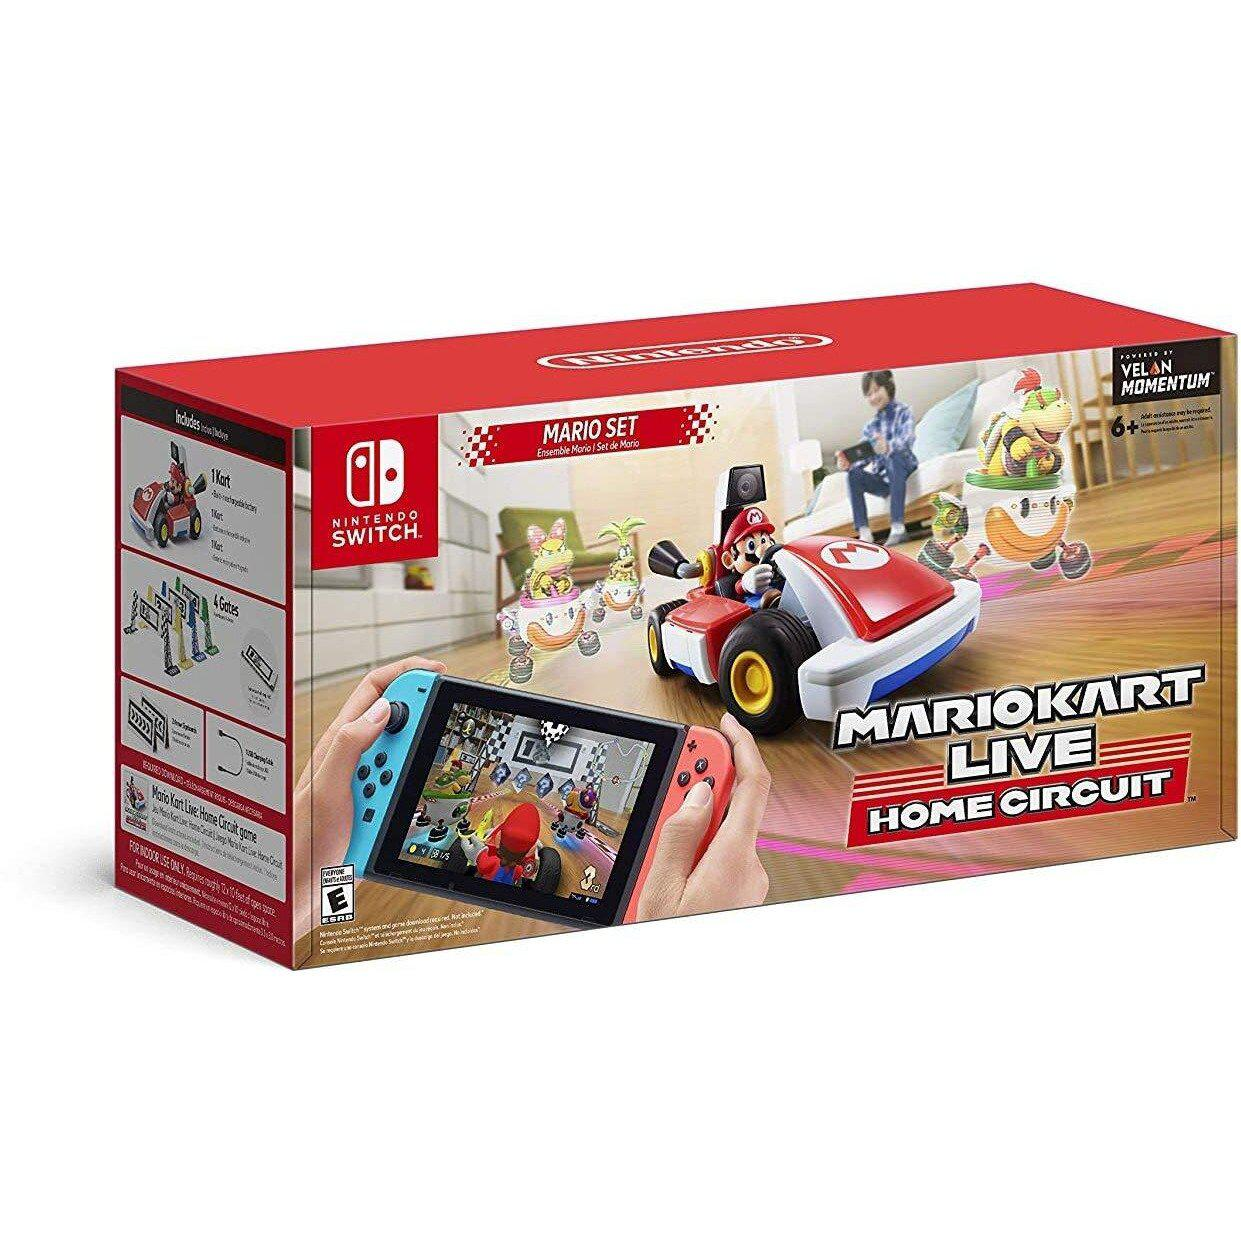 Mario Kart Live: Home Circuit - Mario Set (Switch) (JP)-MercadoGames.com